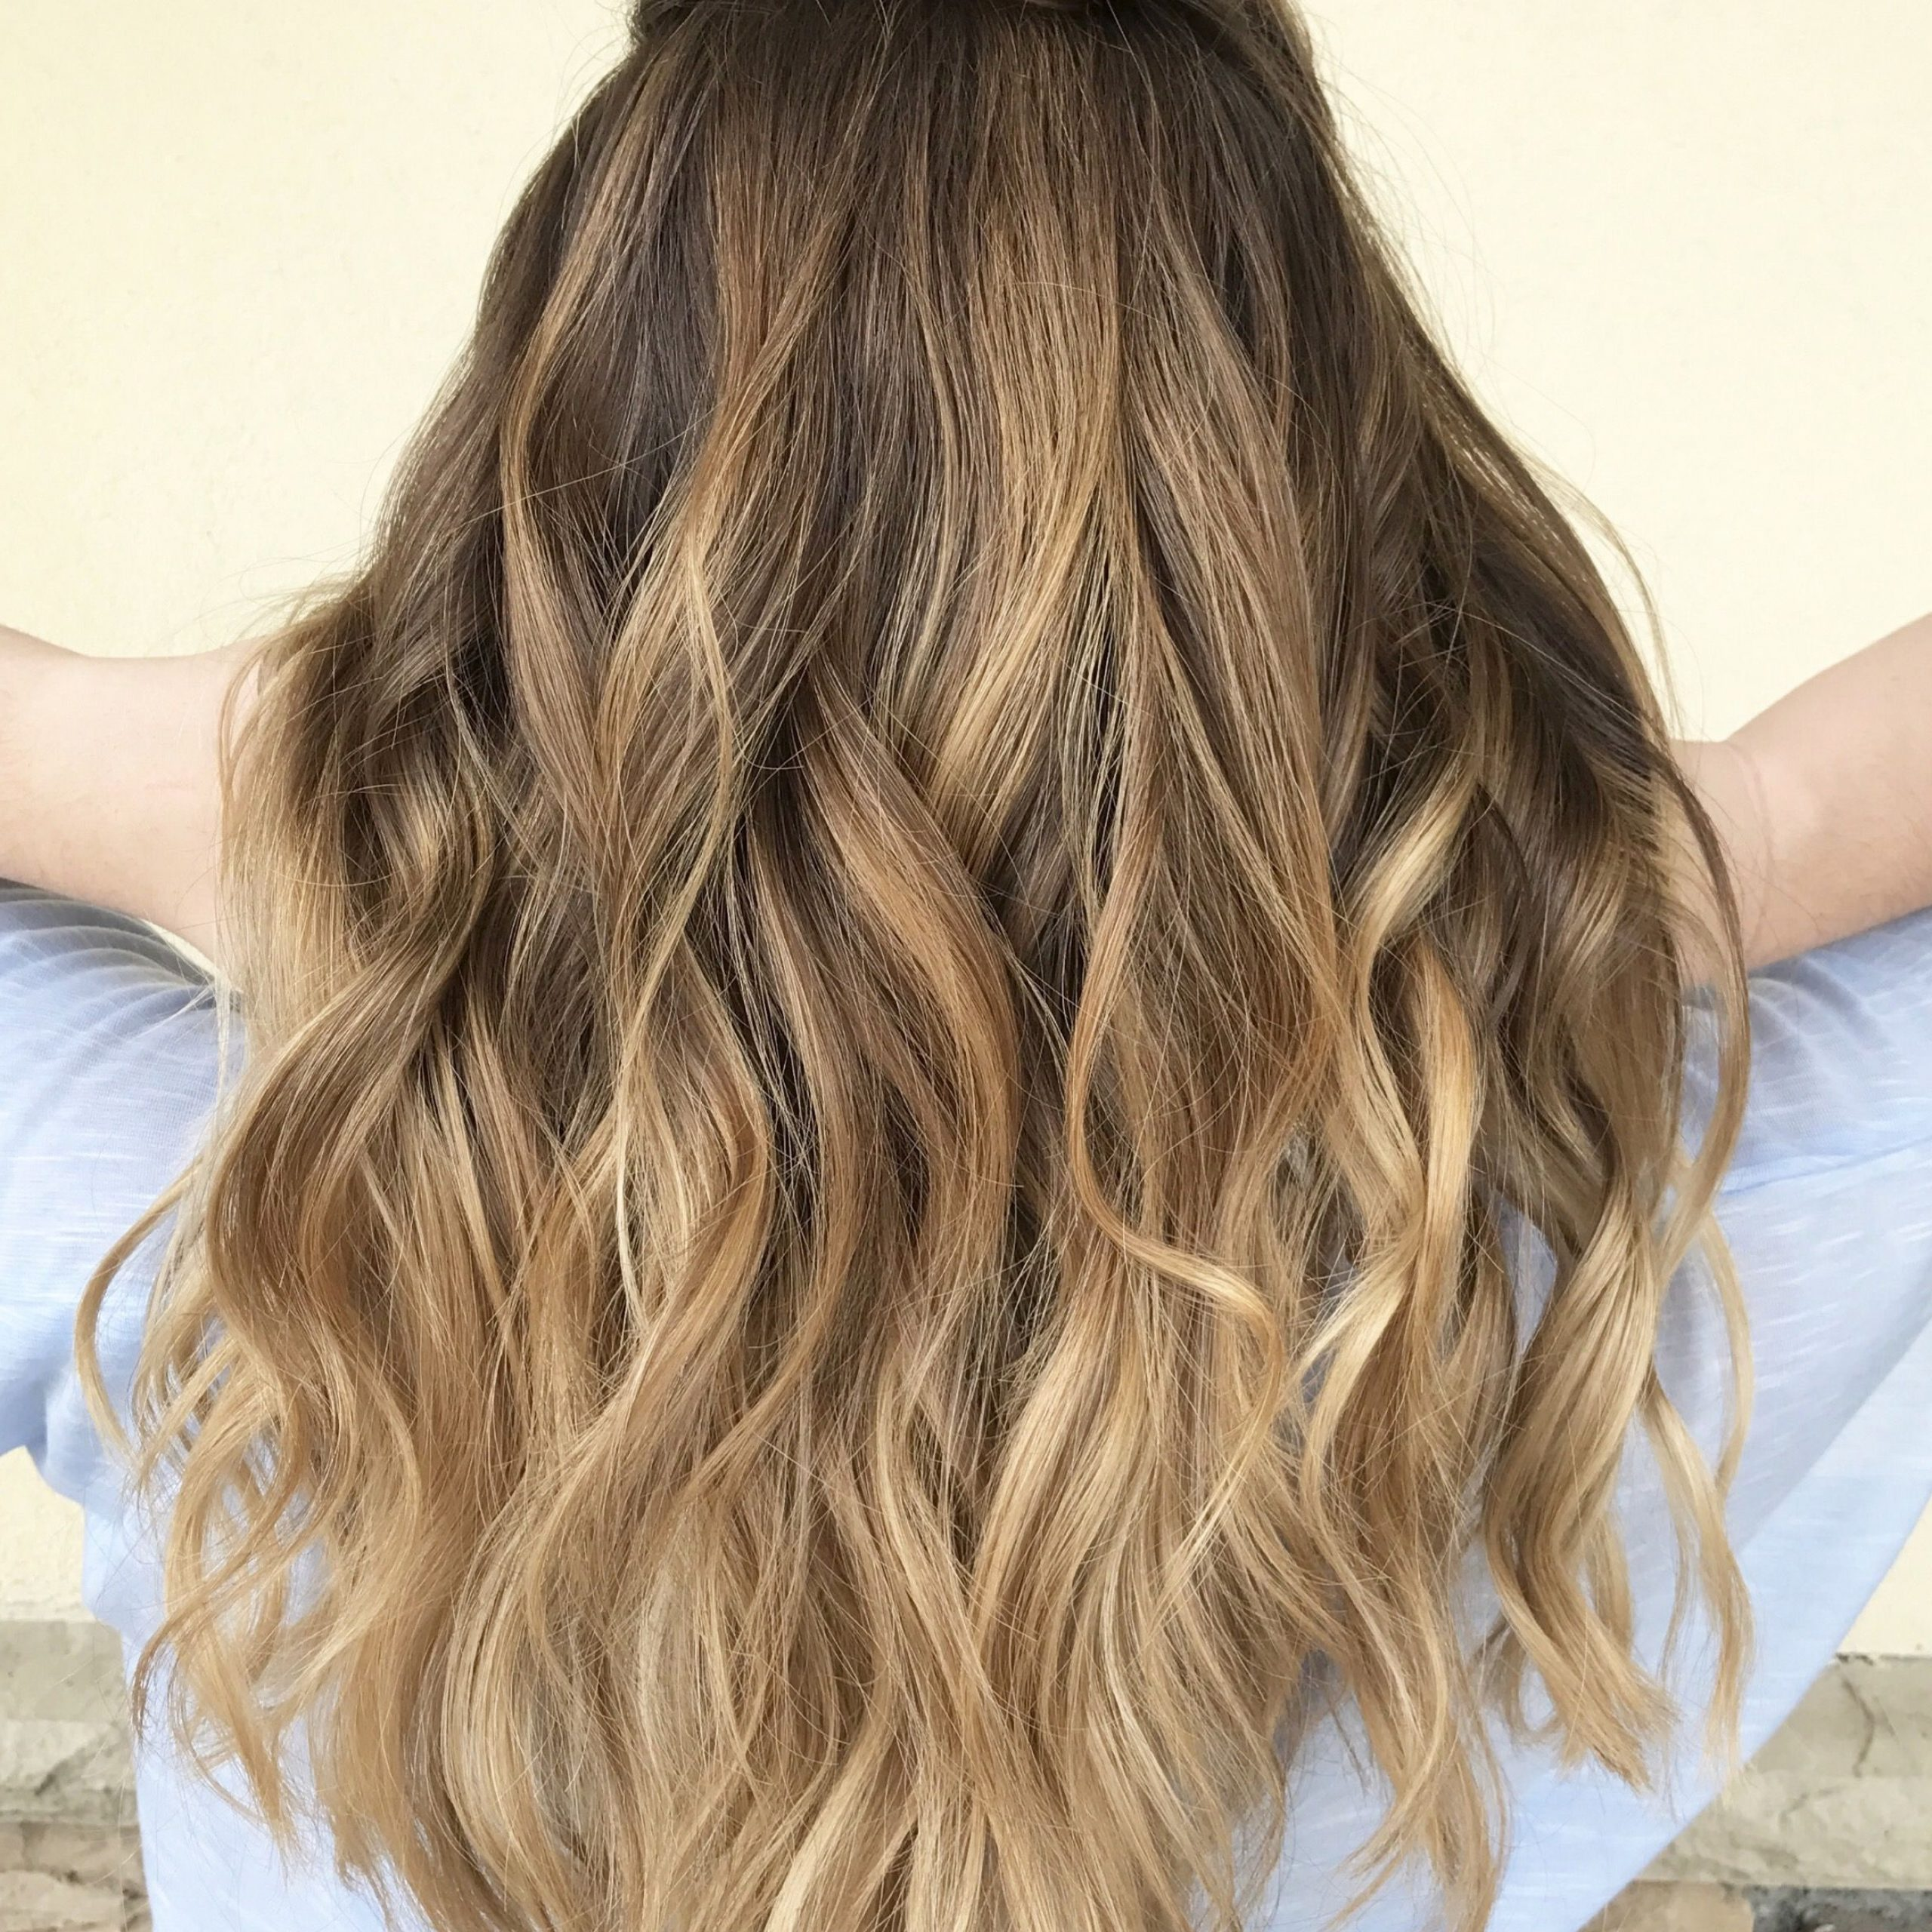 Balayage, Balayage Highlights, Brown Hair, Blonde Hair Throughout Beachy Waves Hairstyles With Balayage Ombre (View 3 of 20)